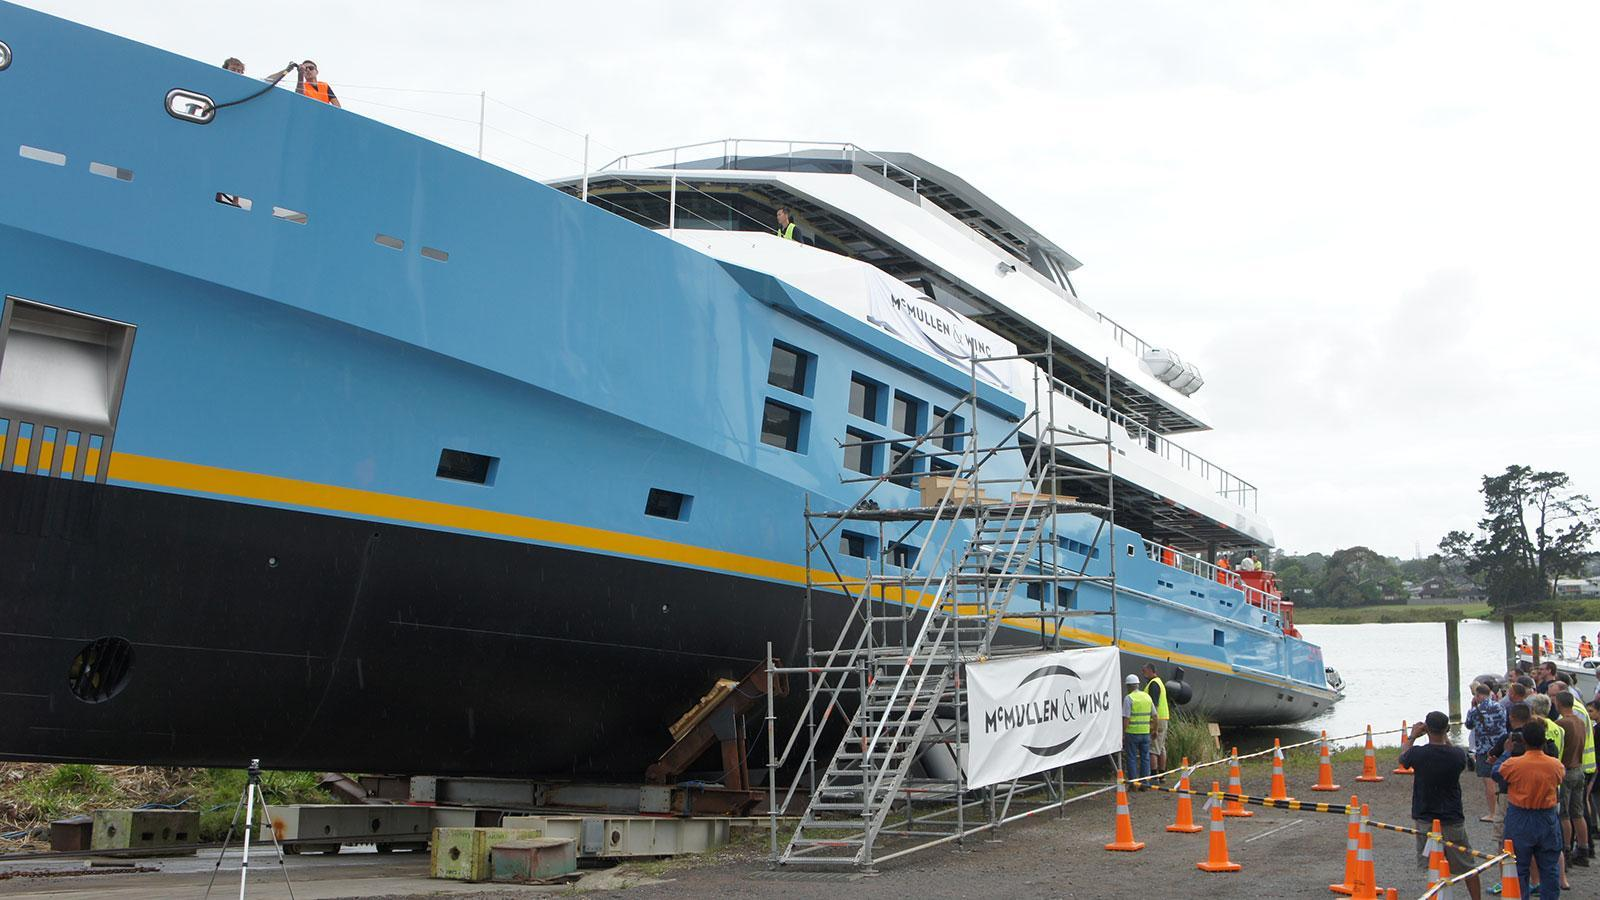 chirundos motoryacht mcmullen and wing 50m 2016 launch half profile